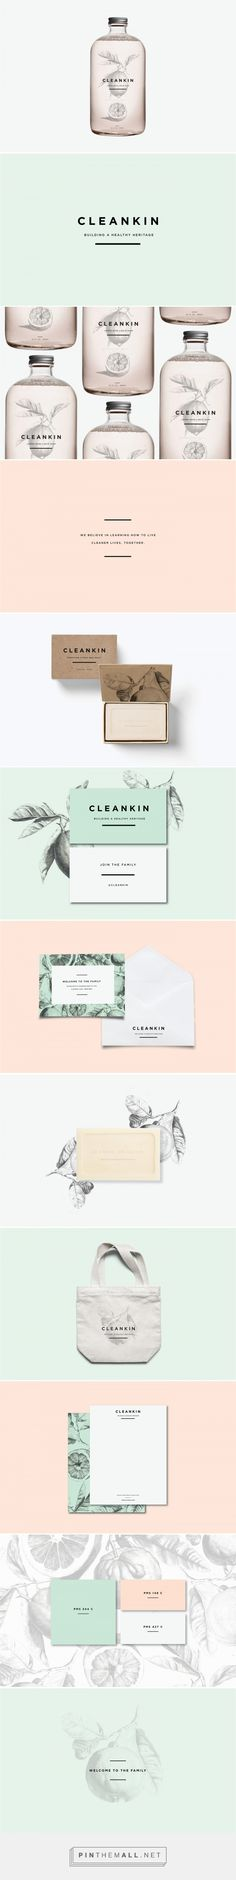 CLEANKIN Natural Cleaning Products Branding and Packaging by Marks and Maker | Fivestar Branding Agency – Design and Branding Agency & Curated Inspiration Gallery  #branding #packaging #design #designinspiration